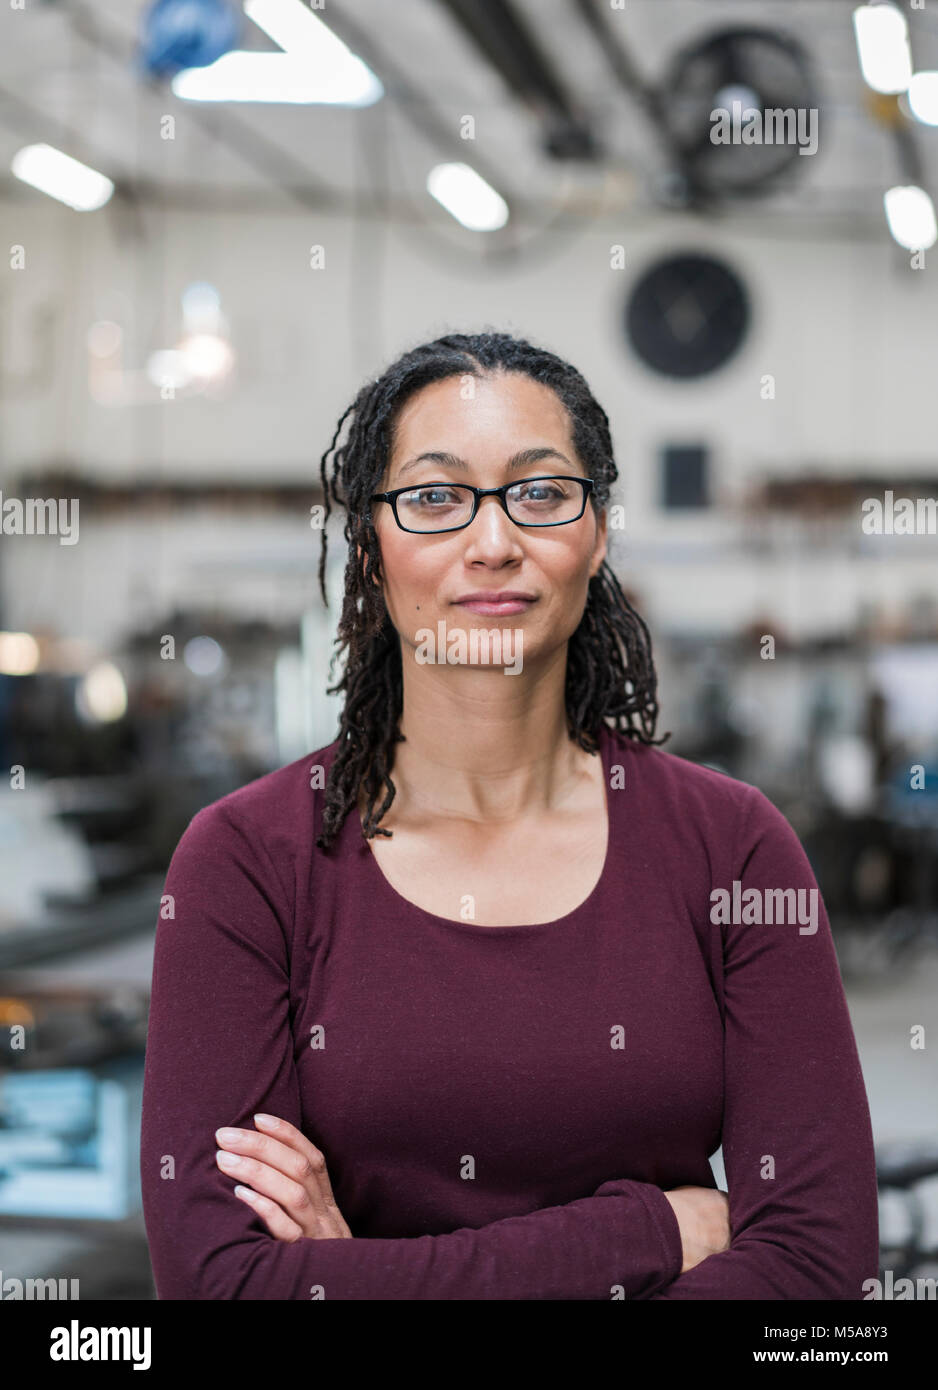 Woman with brown hair wearing glasses standing in metal workshop, smiling at camera. - Stock Image